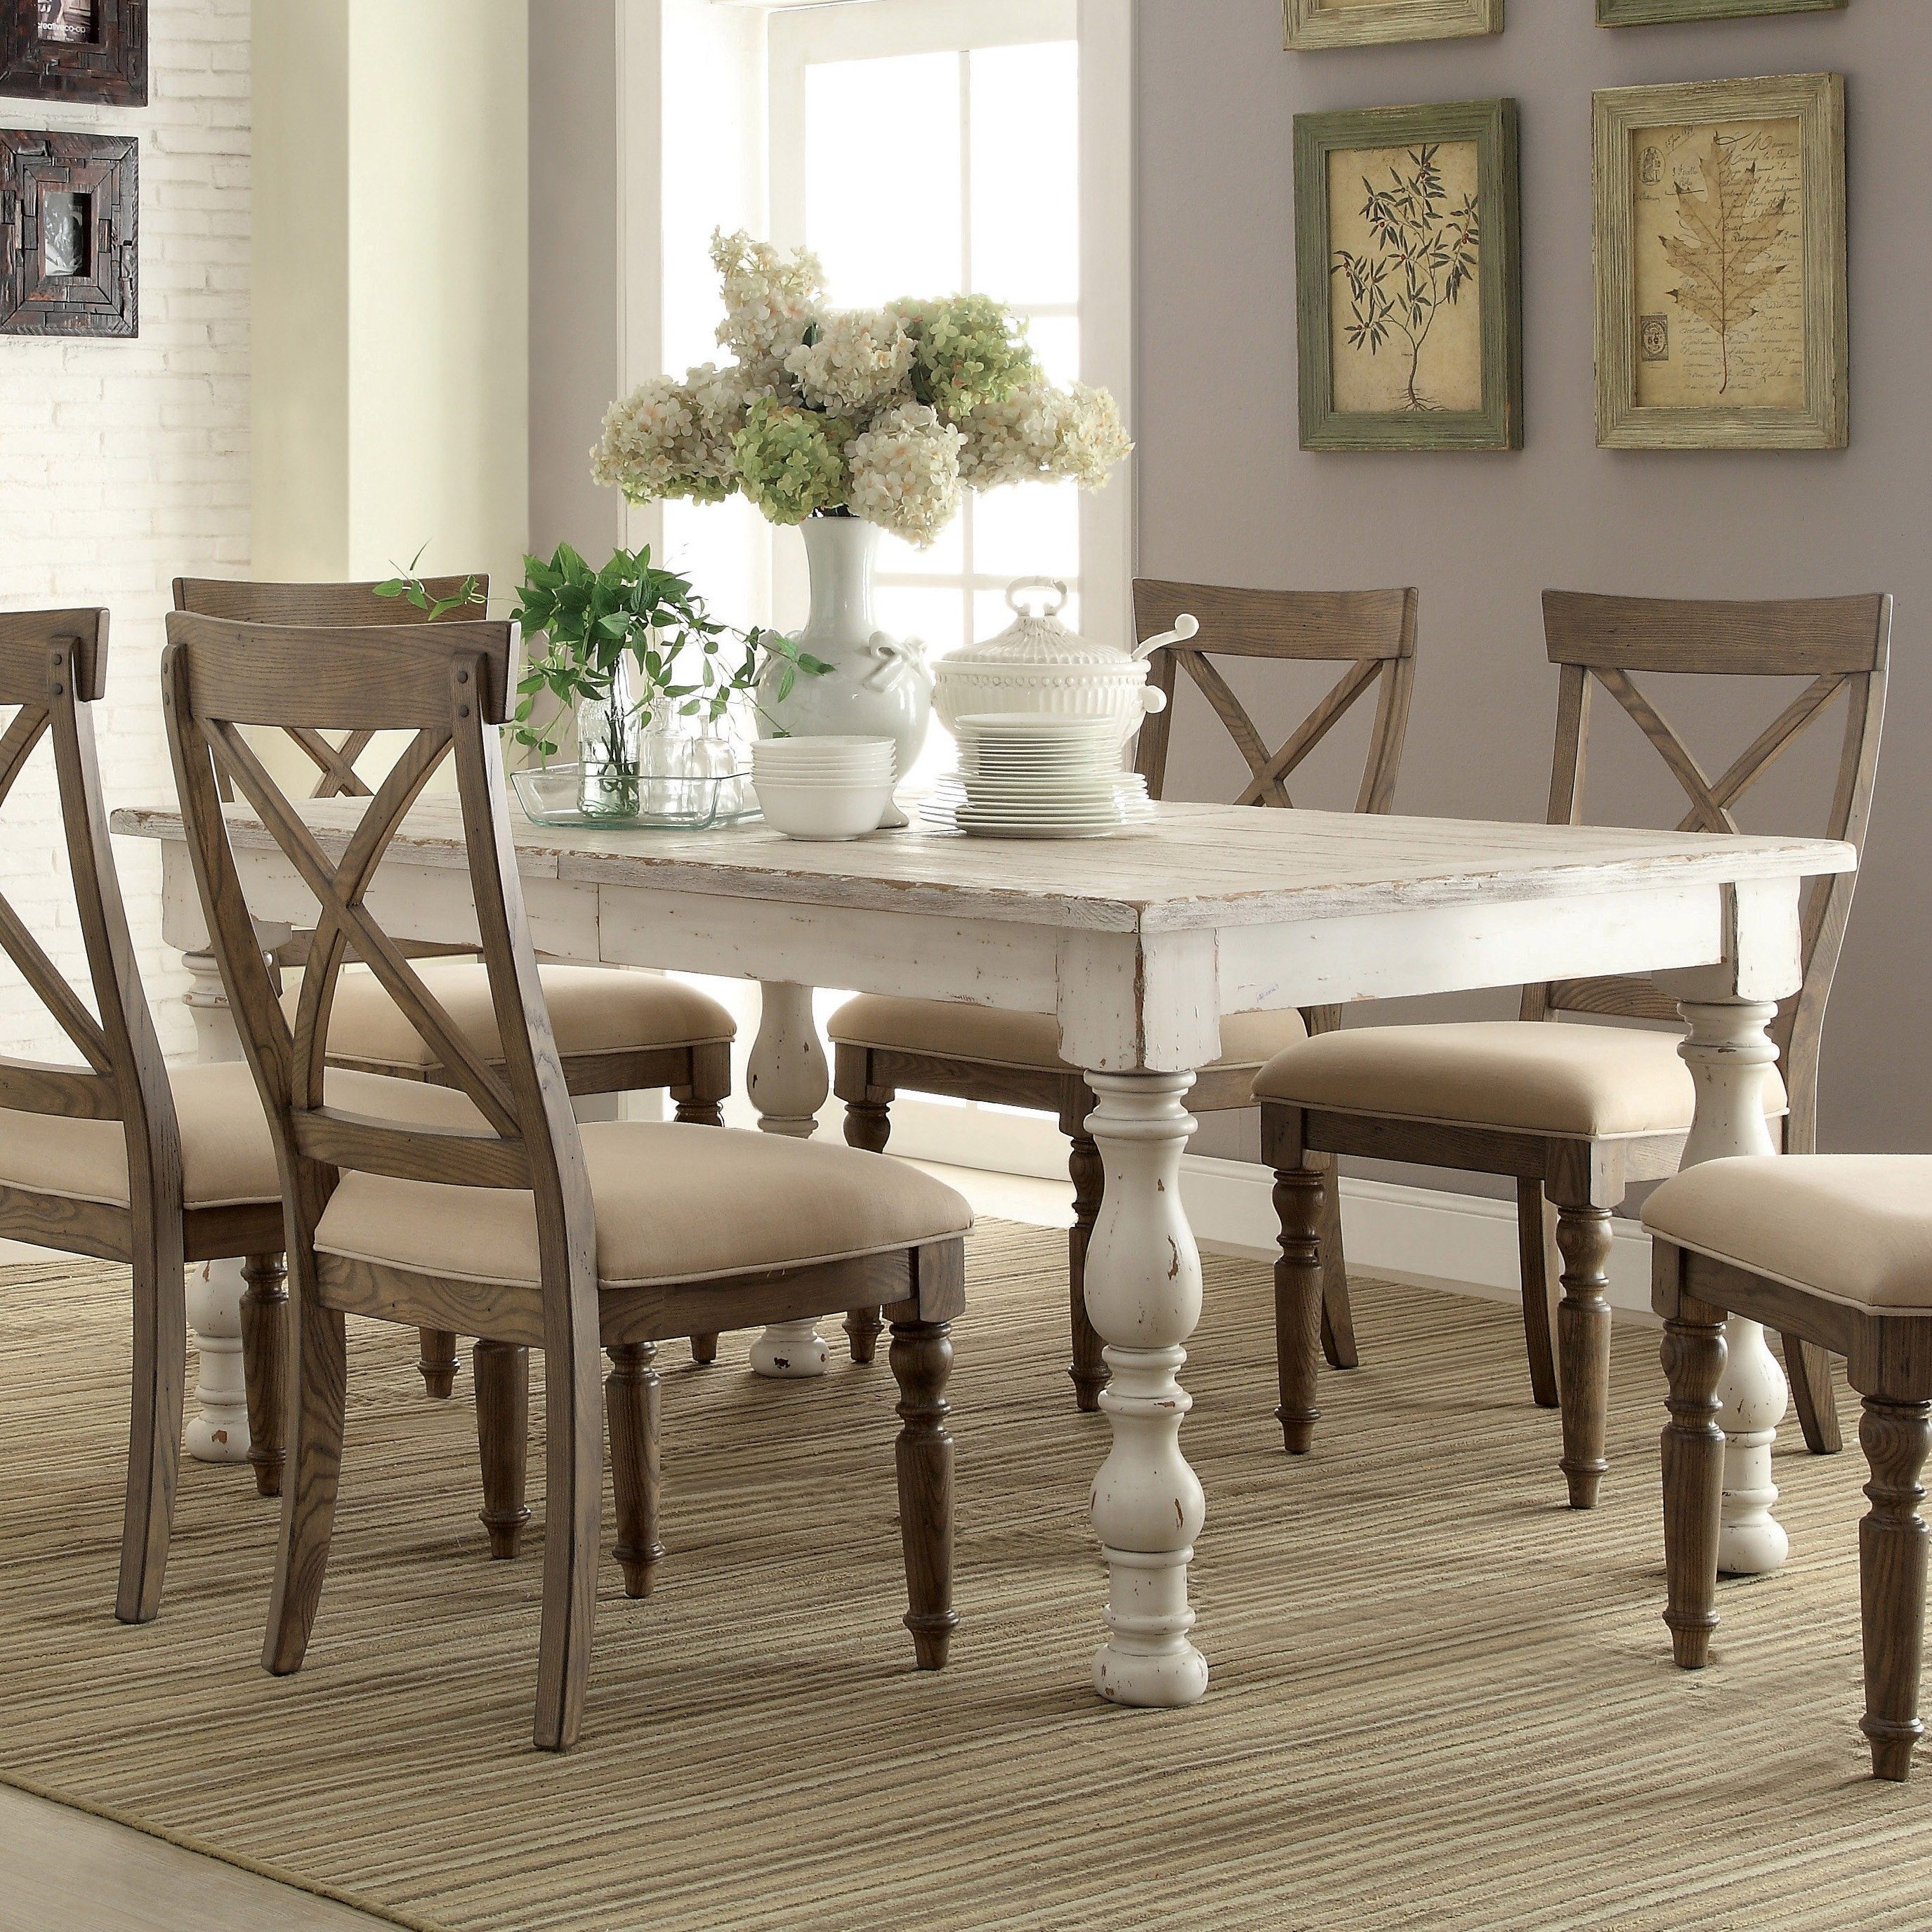 White Wood Kitchen Table Sets Aberdeen Wood Rectangular Dining Table And Chairs In Weathered